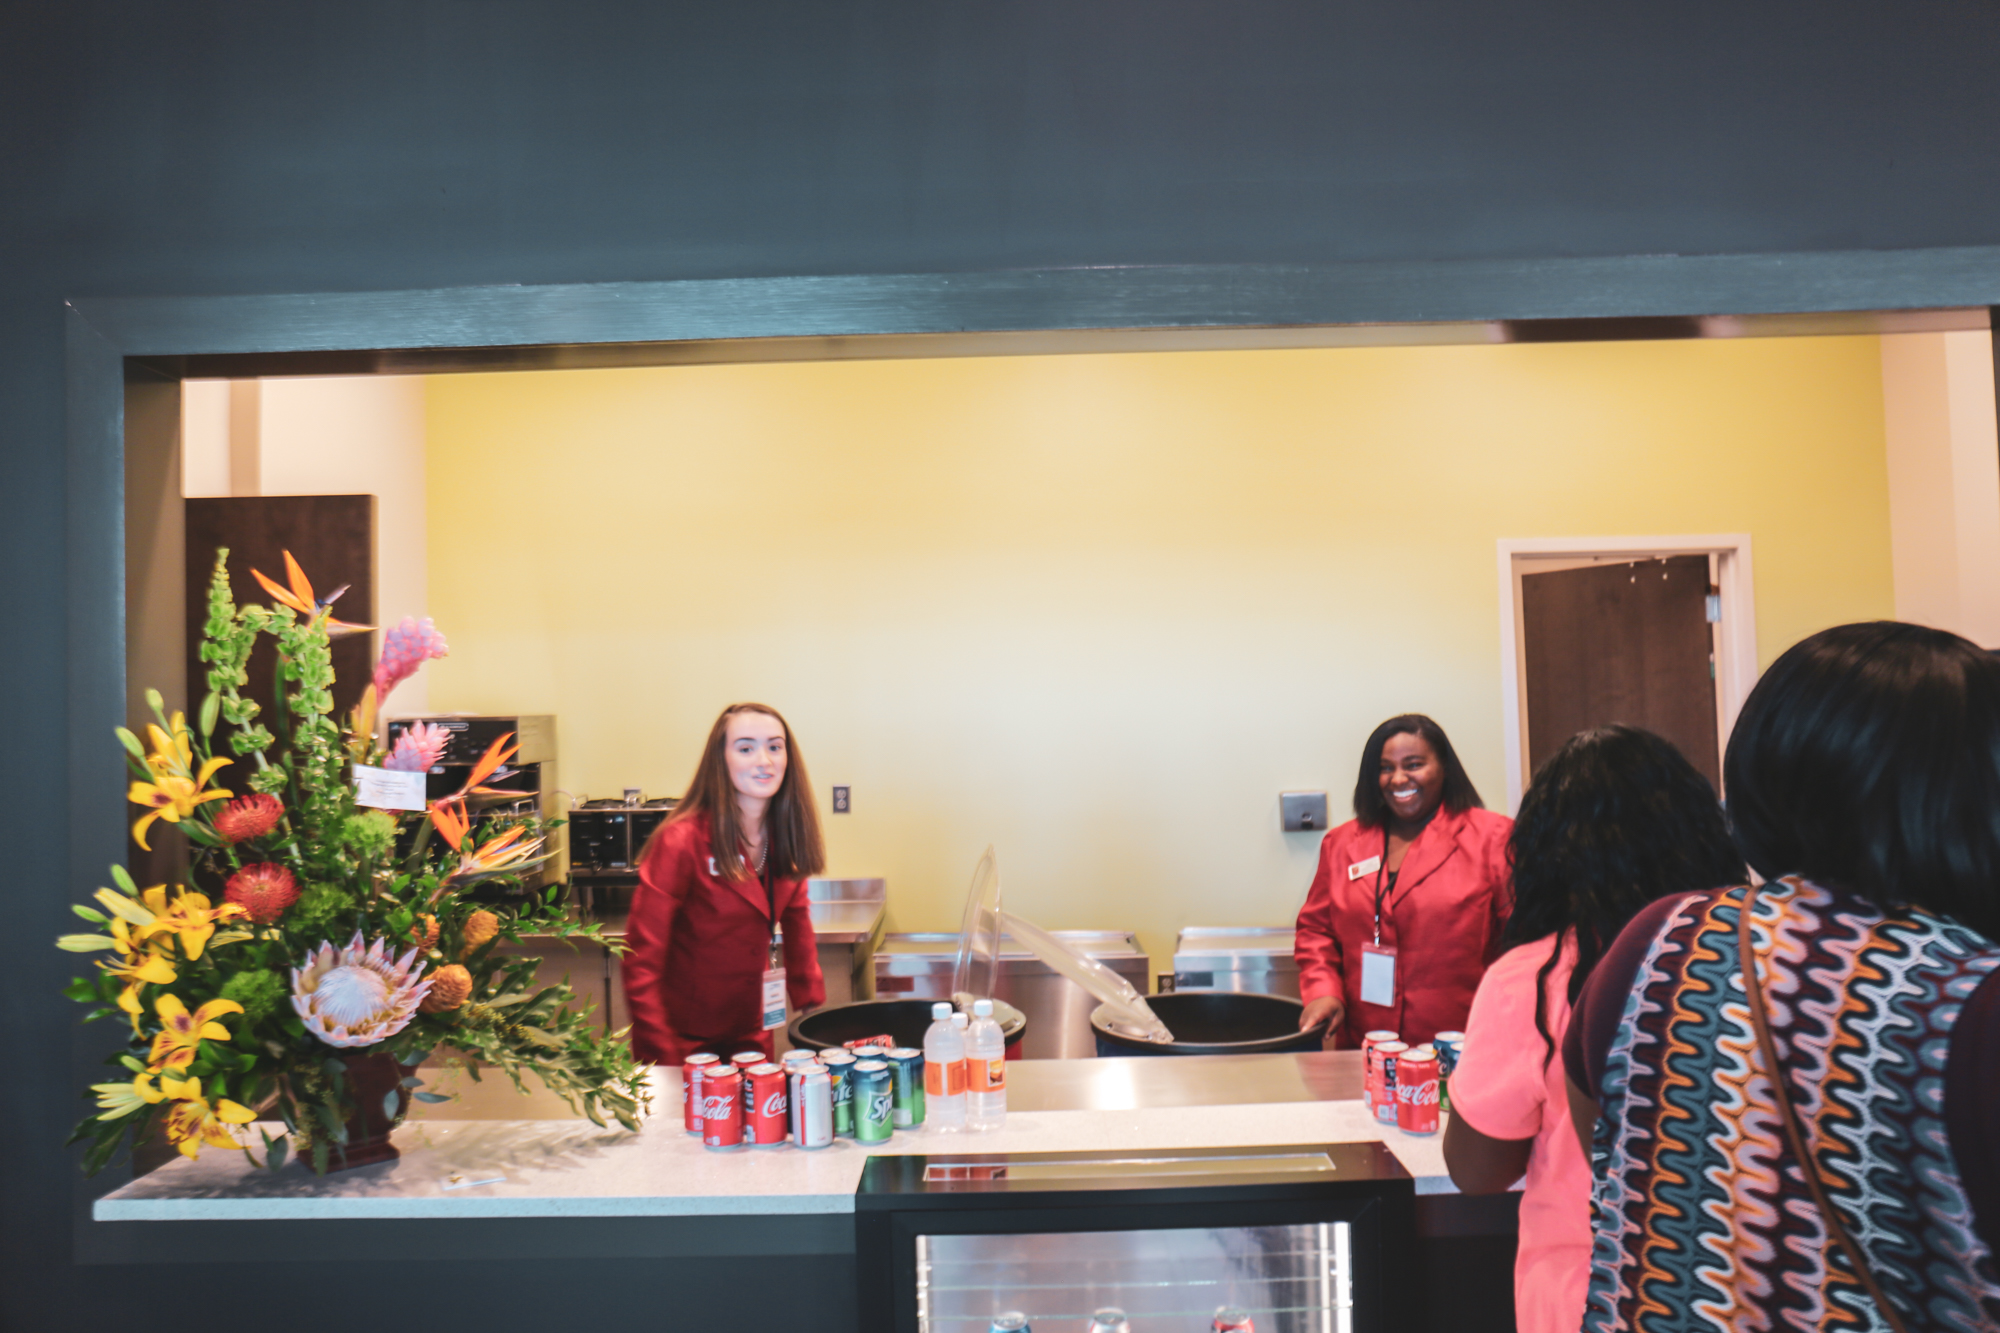 concession stand during open house